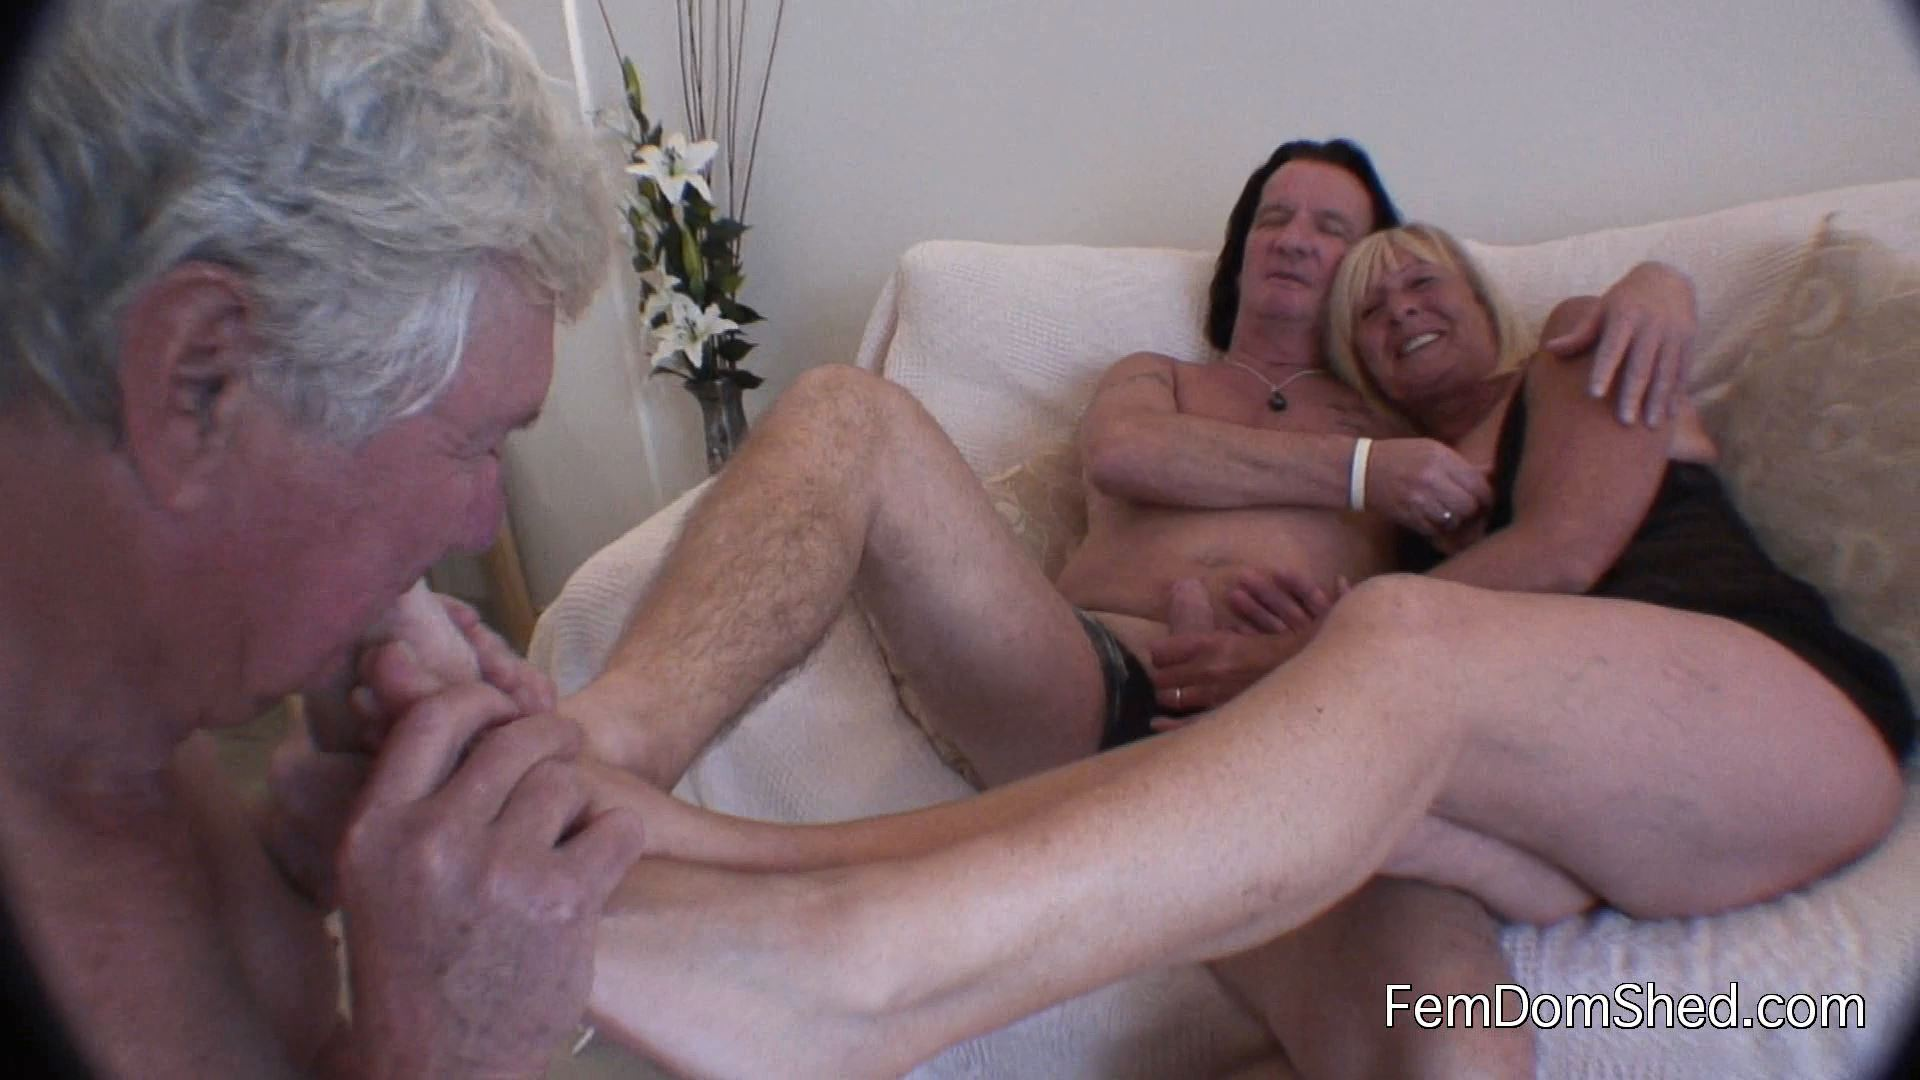 Cuckoldress Diane - Lick Our Feet Hubby Or Pack Your Bags And Go If You Wana Stick Around You WI'll Have To Prove Your Value - FEMDOMSHED - FULL HD/1080p/MP4